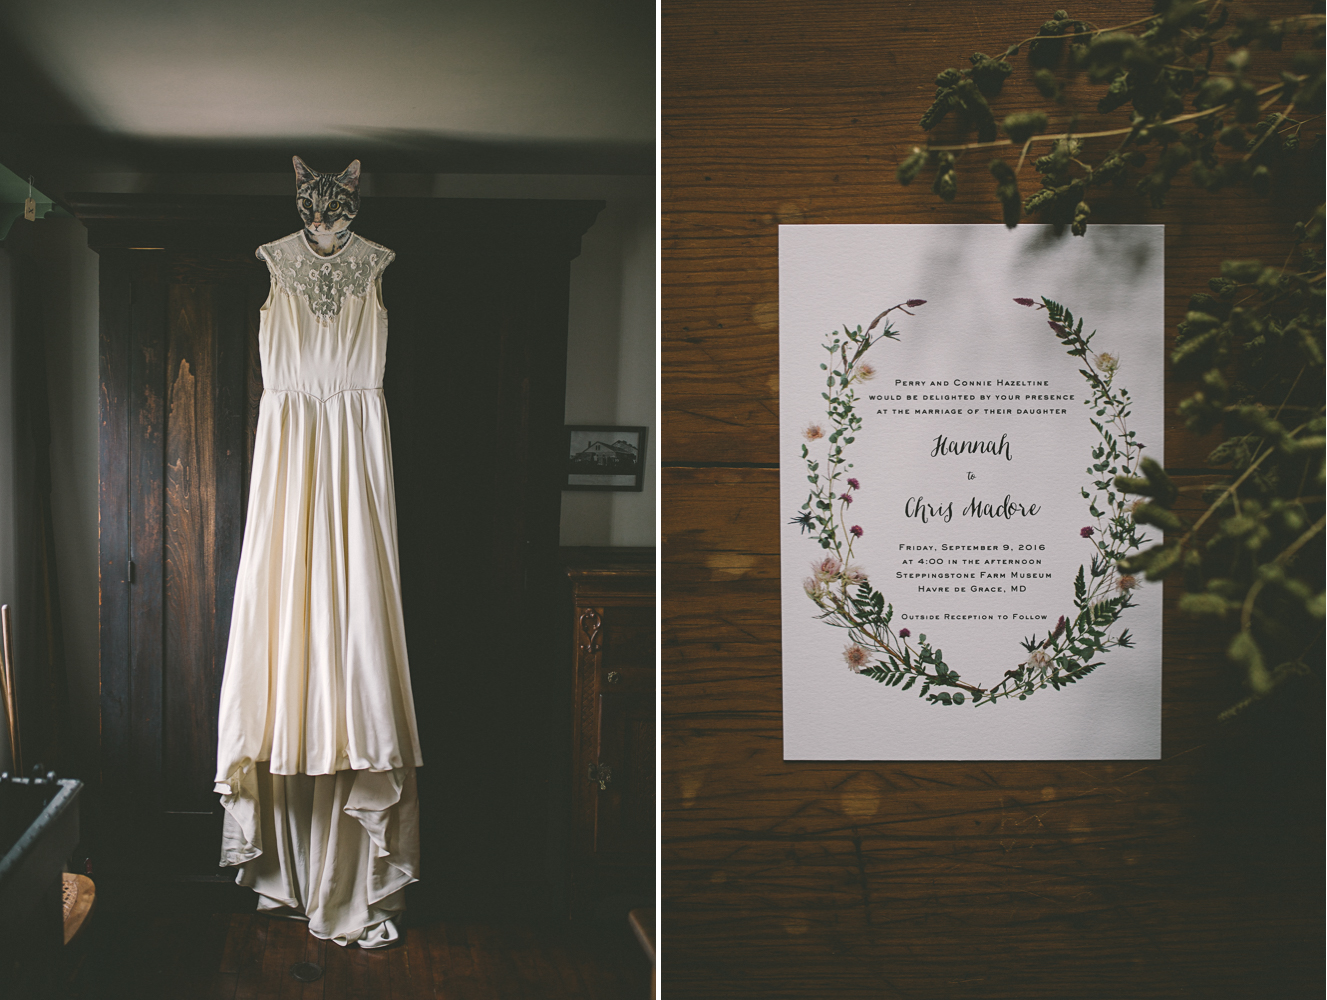 wedding dress invitation.jpg